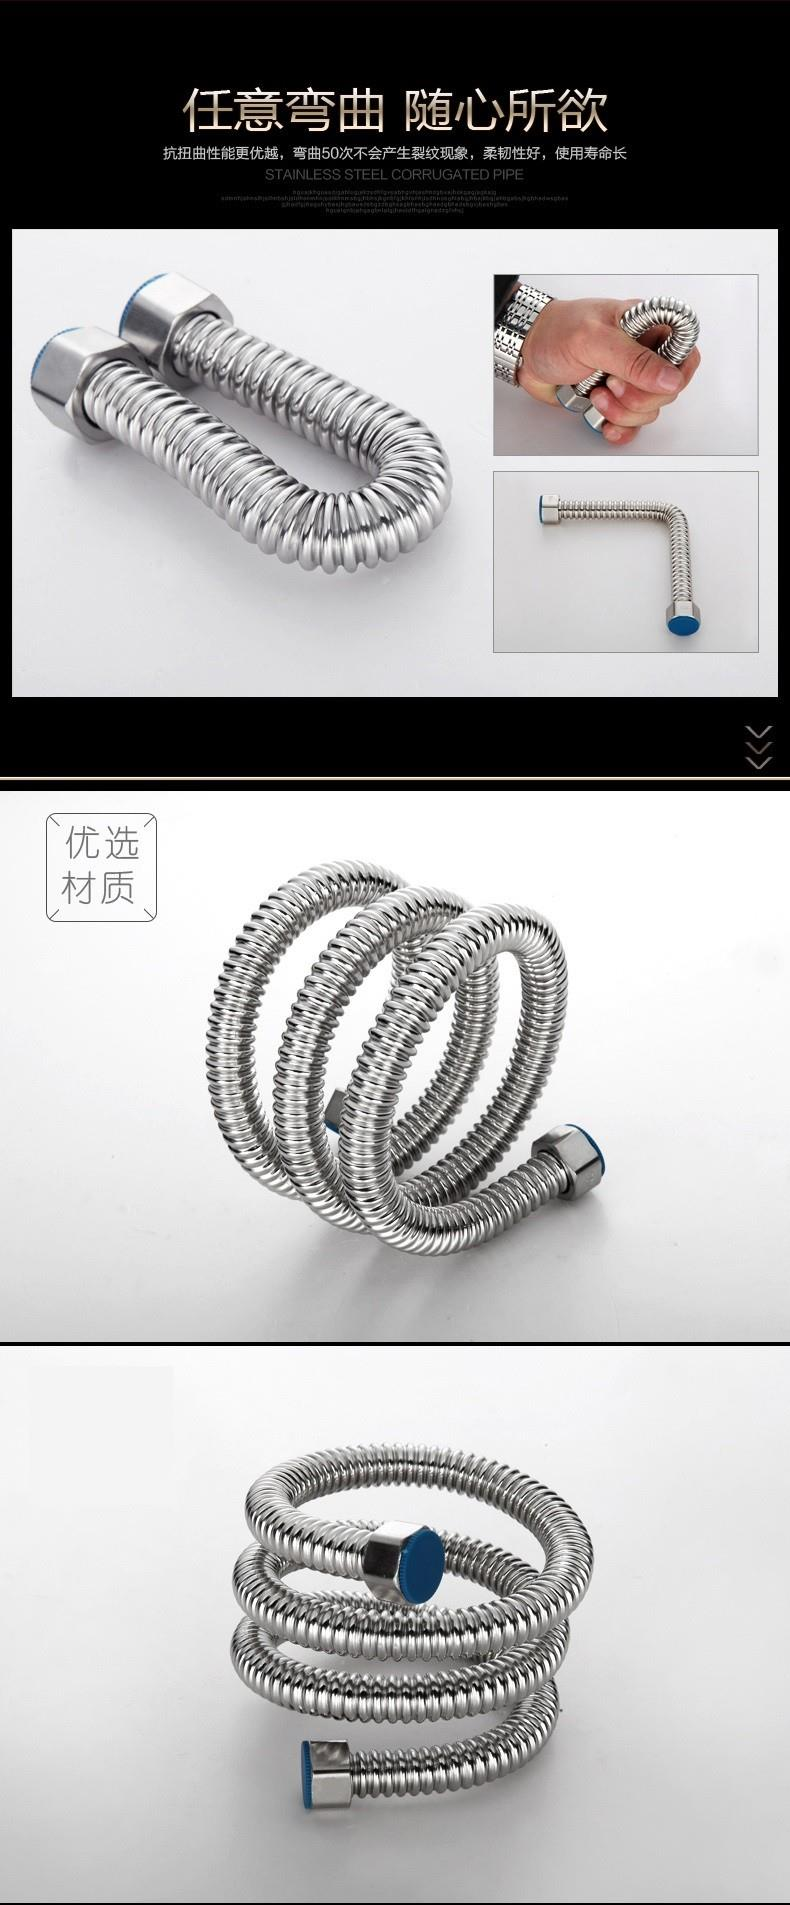 304 Stainless Steel Flexible Corrugated Hose Pipe 56cm